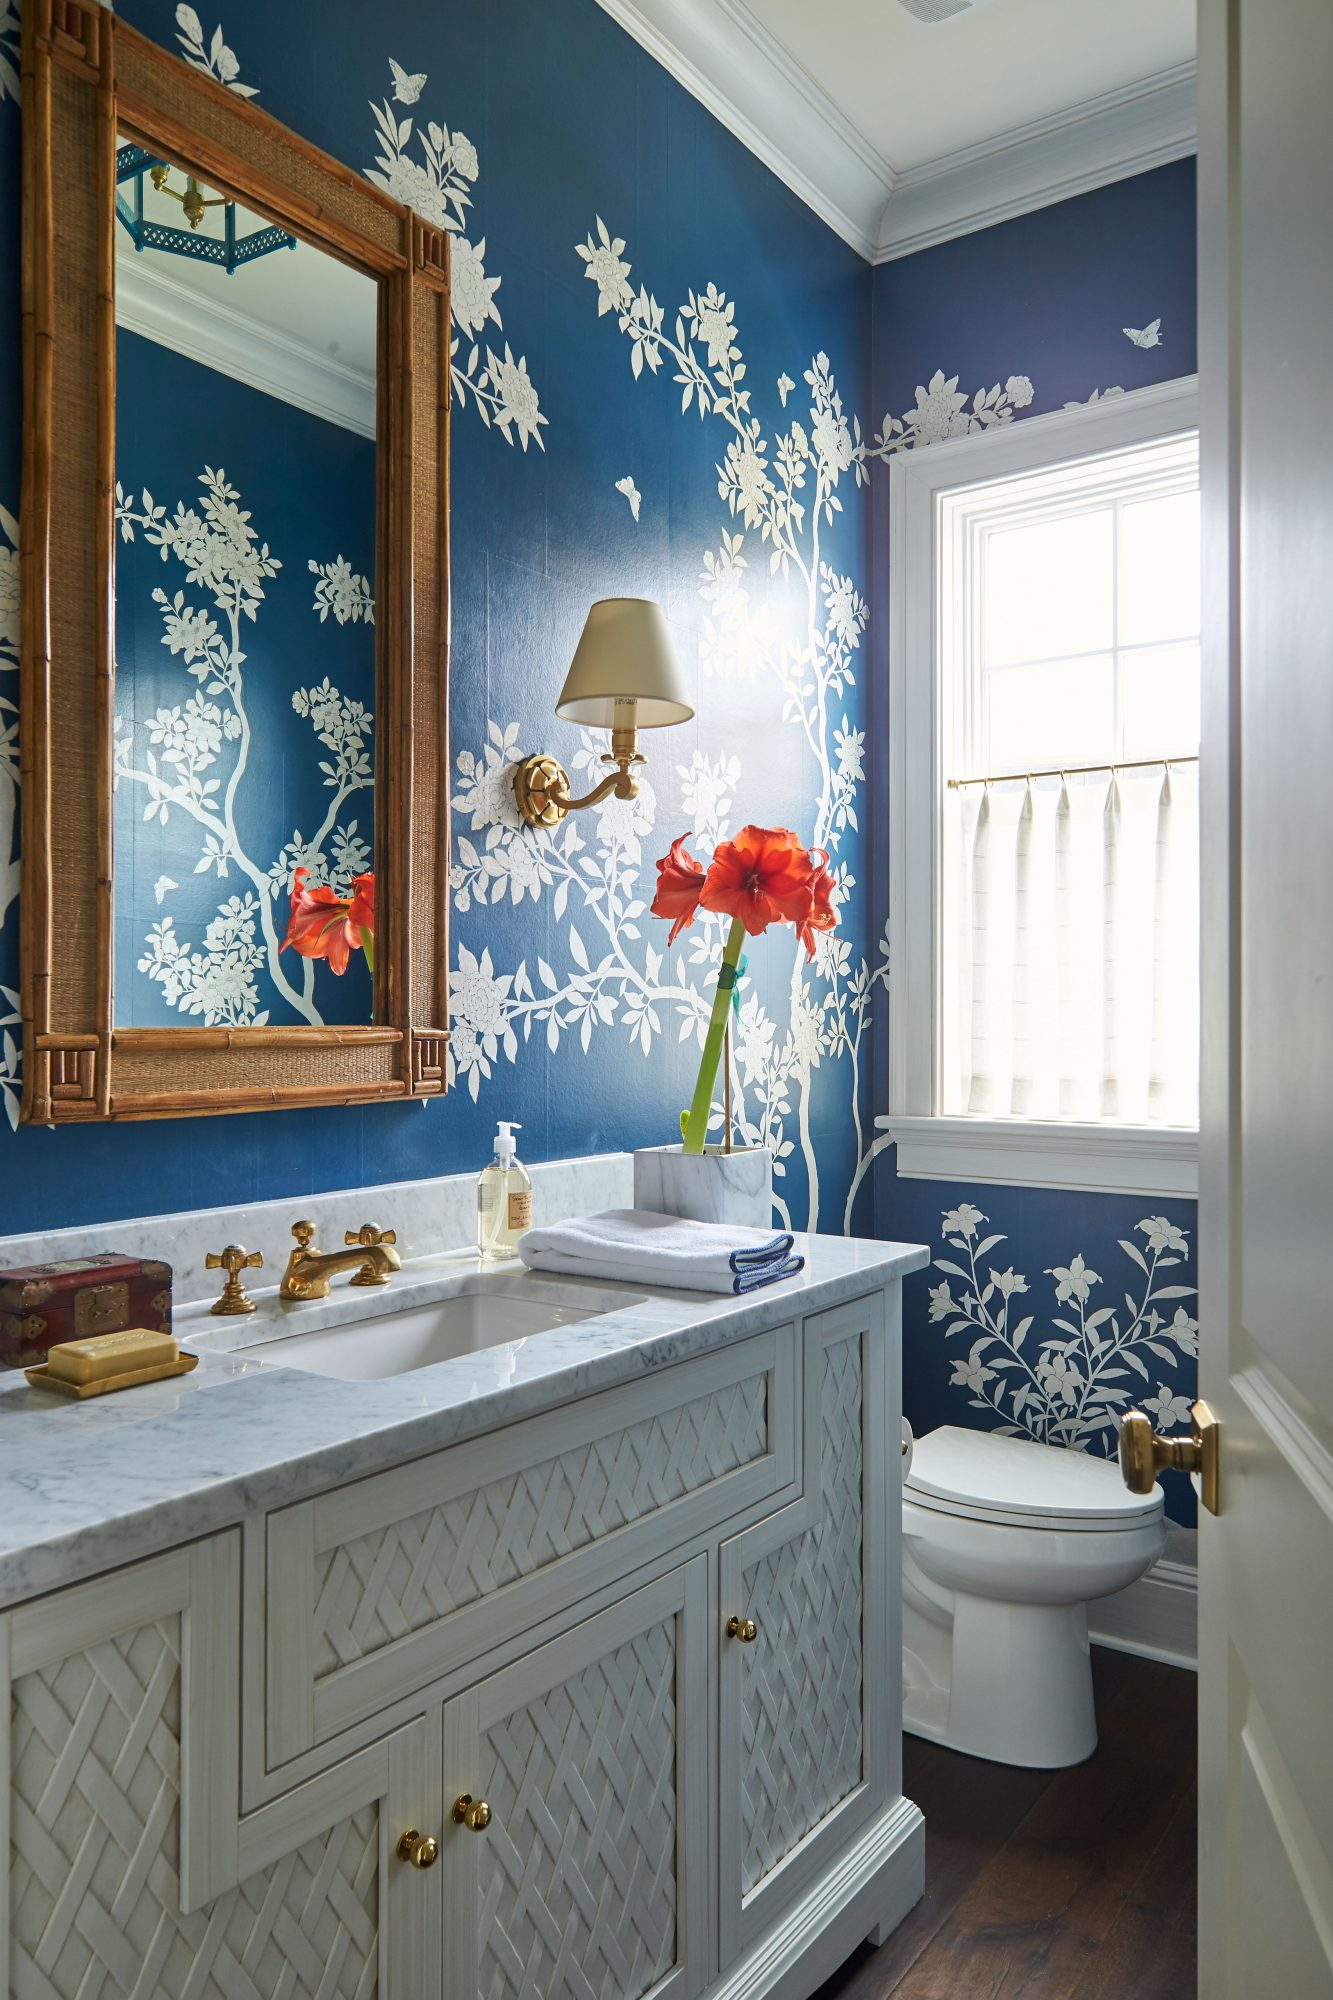 Andrew Howard Home Decorated for Christmas Blue and White Powder Room